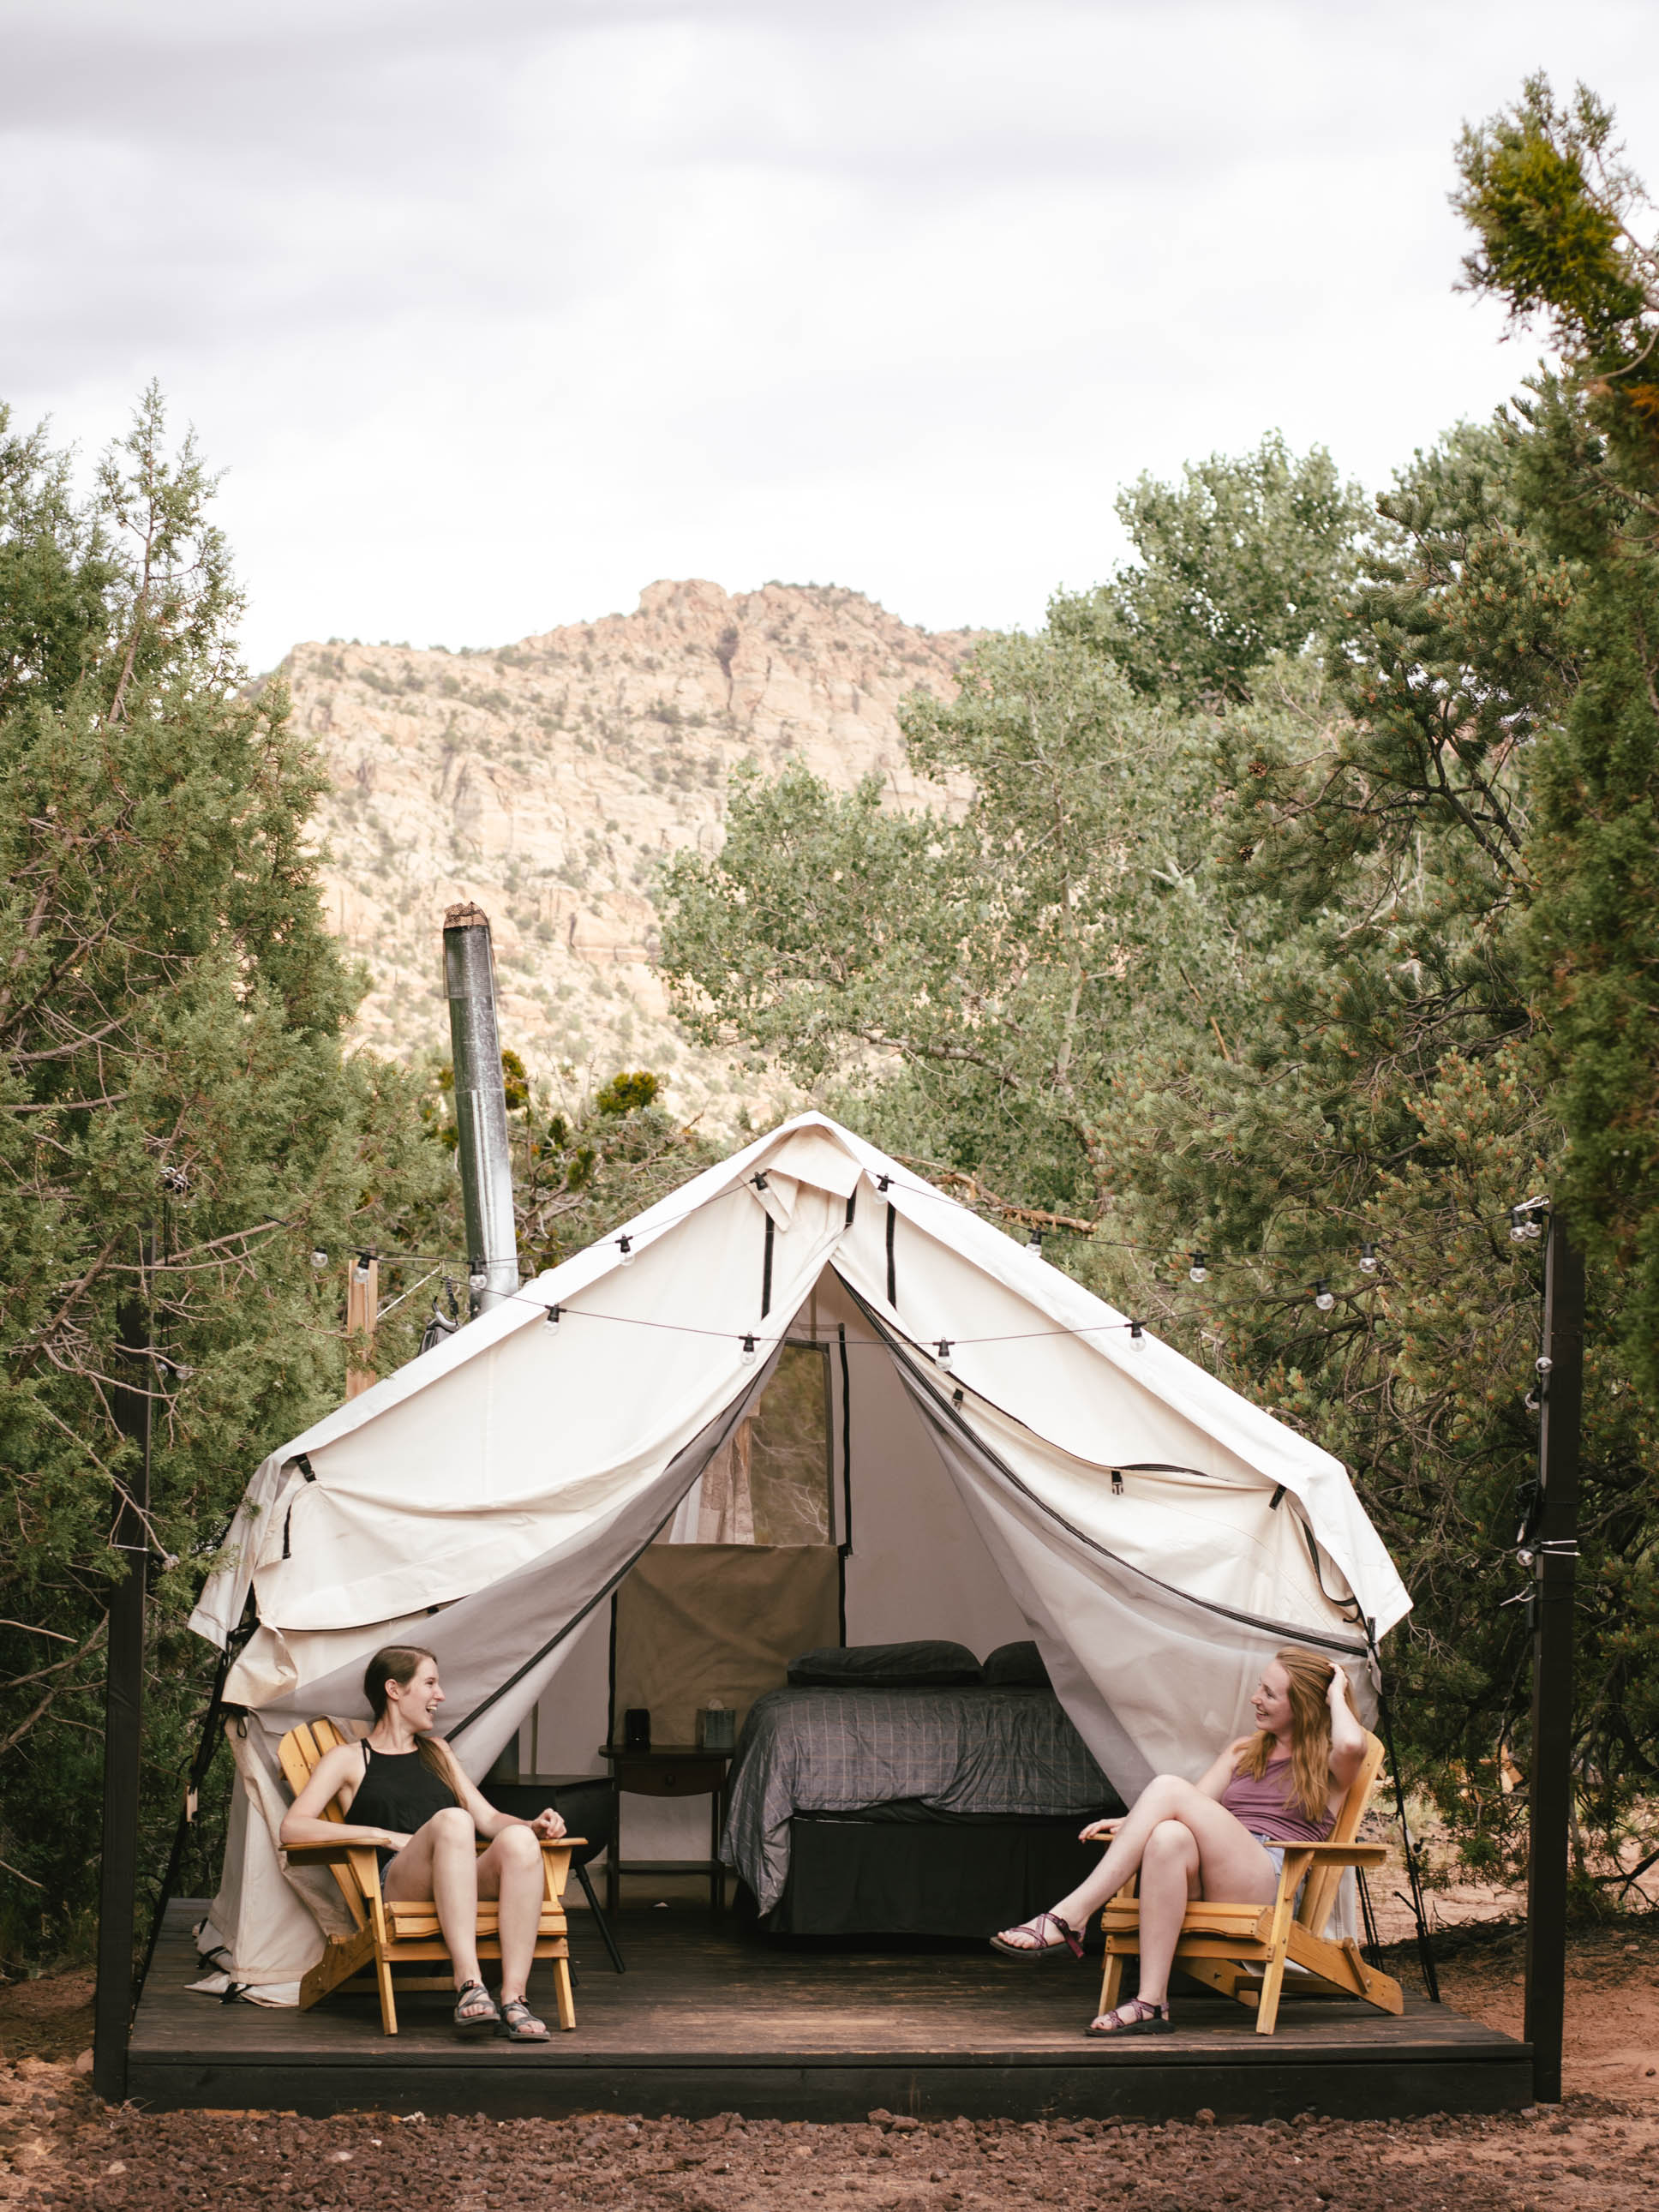 We made sure to include glamping on our Utah road trip itinerary